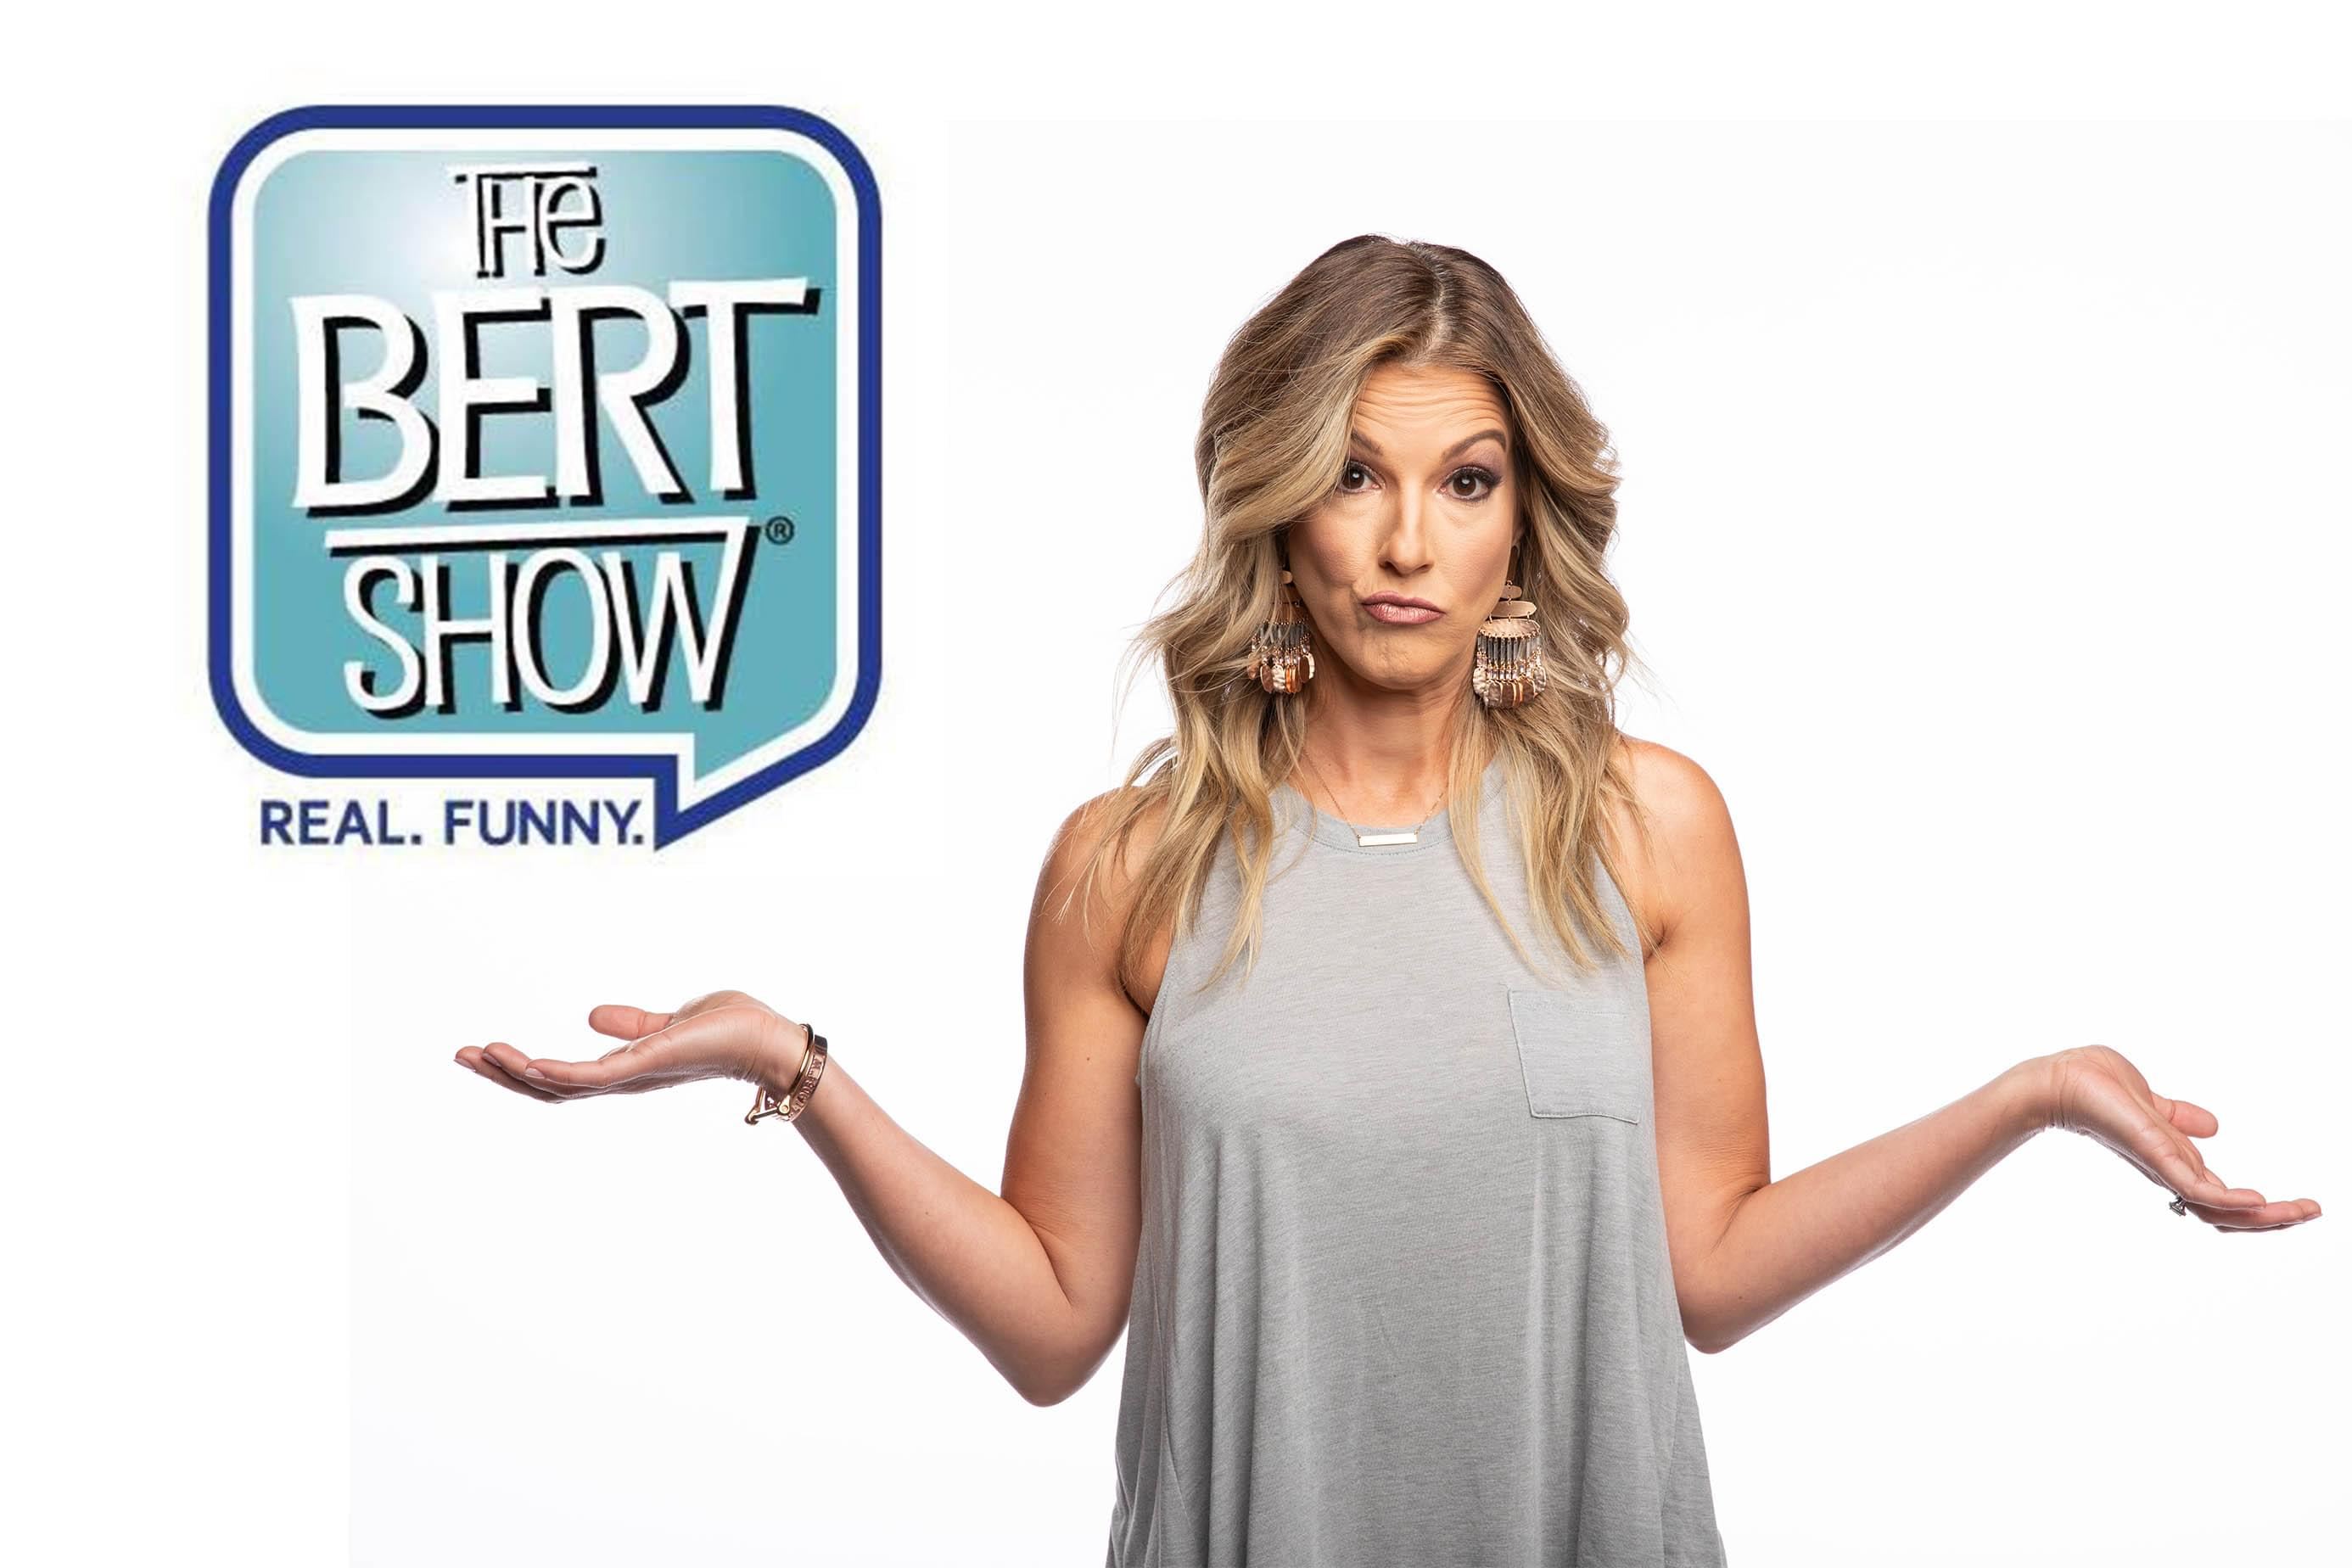 KRISTIN HAD A DIRTY DREAM ABOUT SOMEONE IN STUDIO | The Bert Show